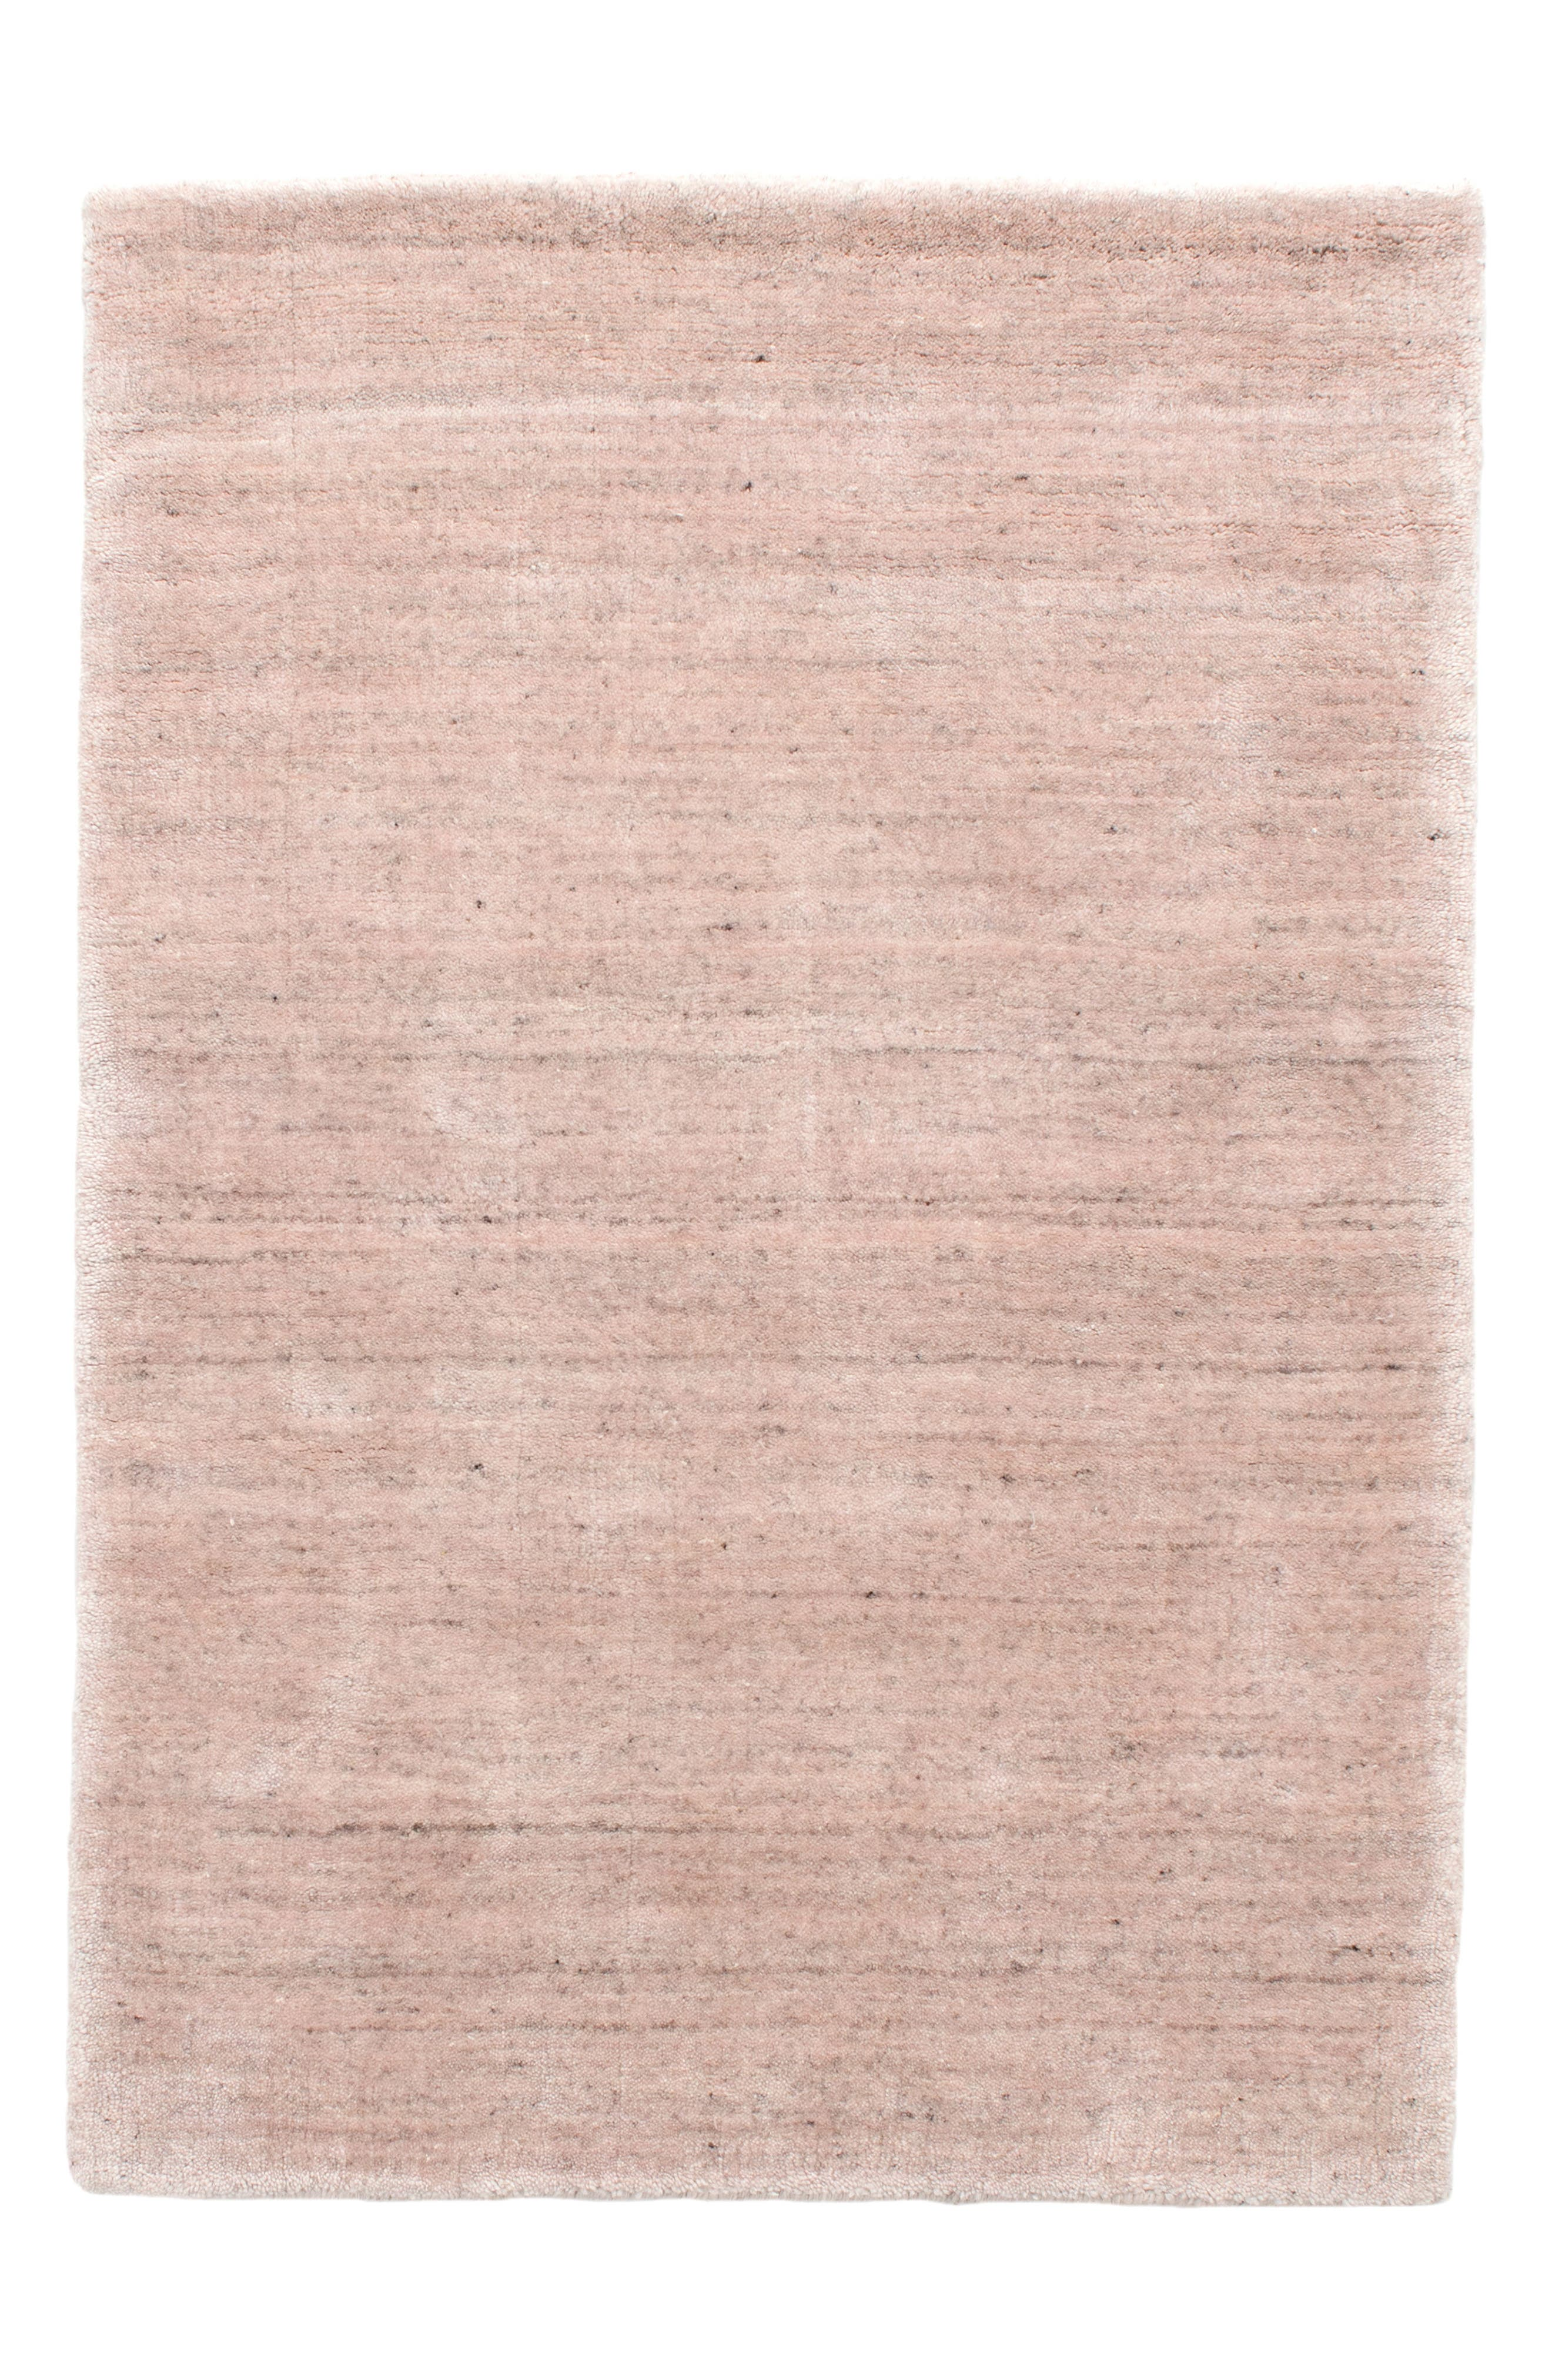 Icelandia Slipper Hand Knotted Rug,                             Main thumbnail 1, color,                             Pink